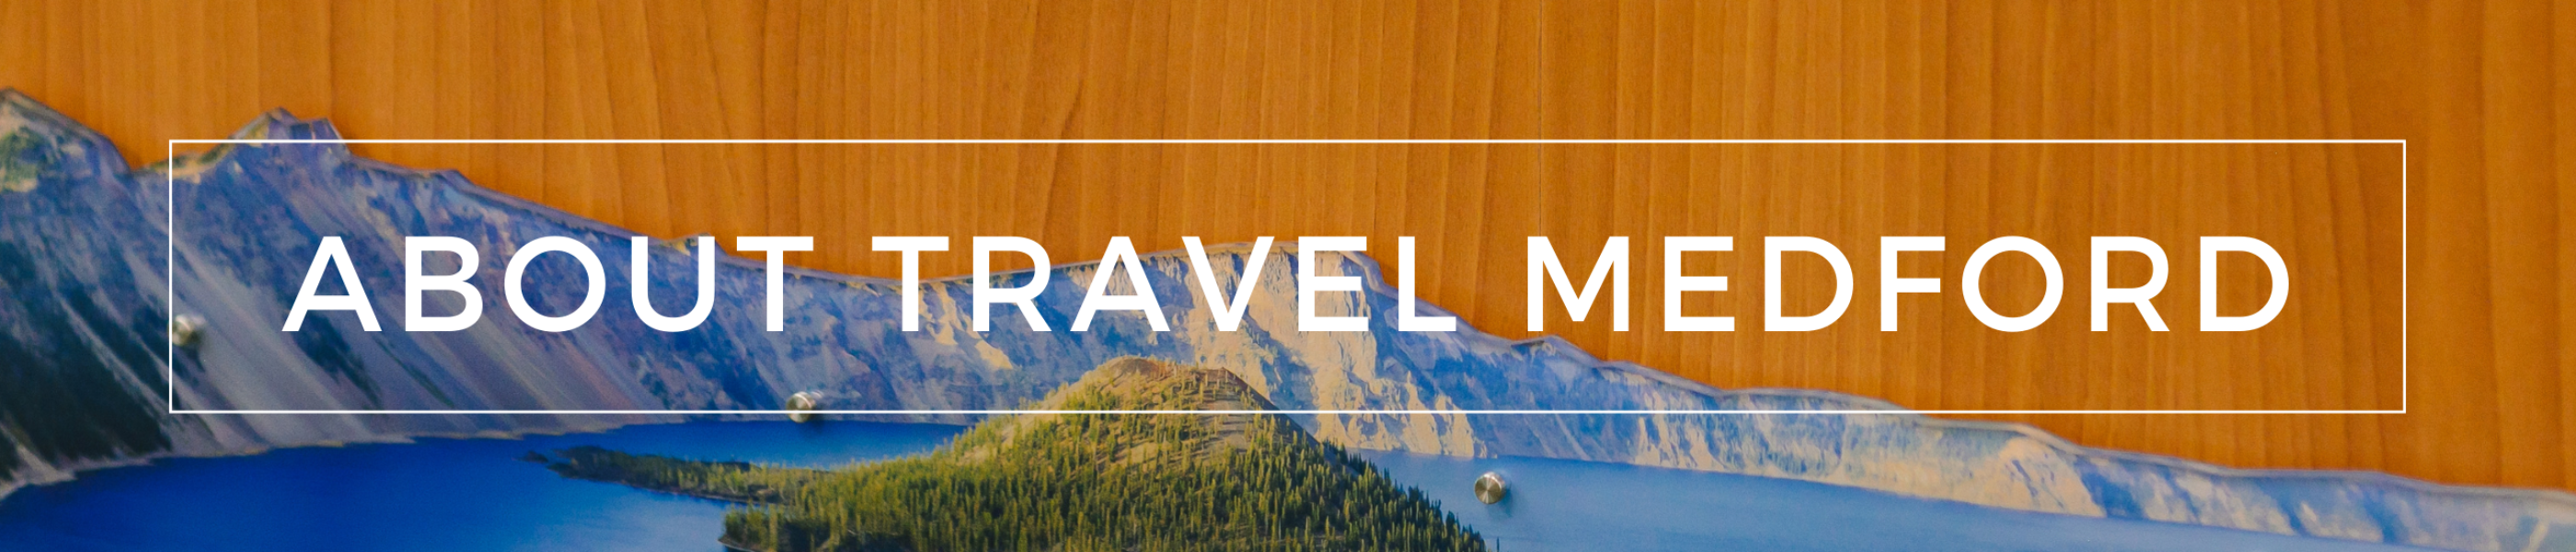 About Travel Medford Banner, information, about section